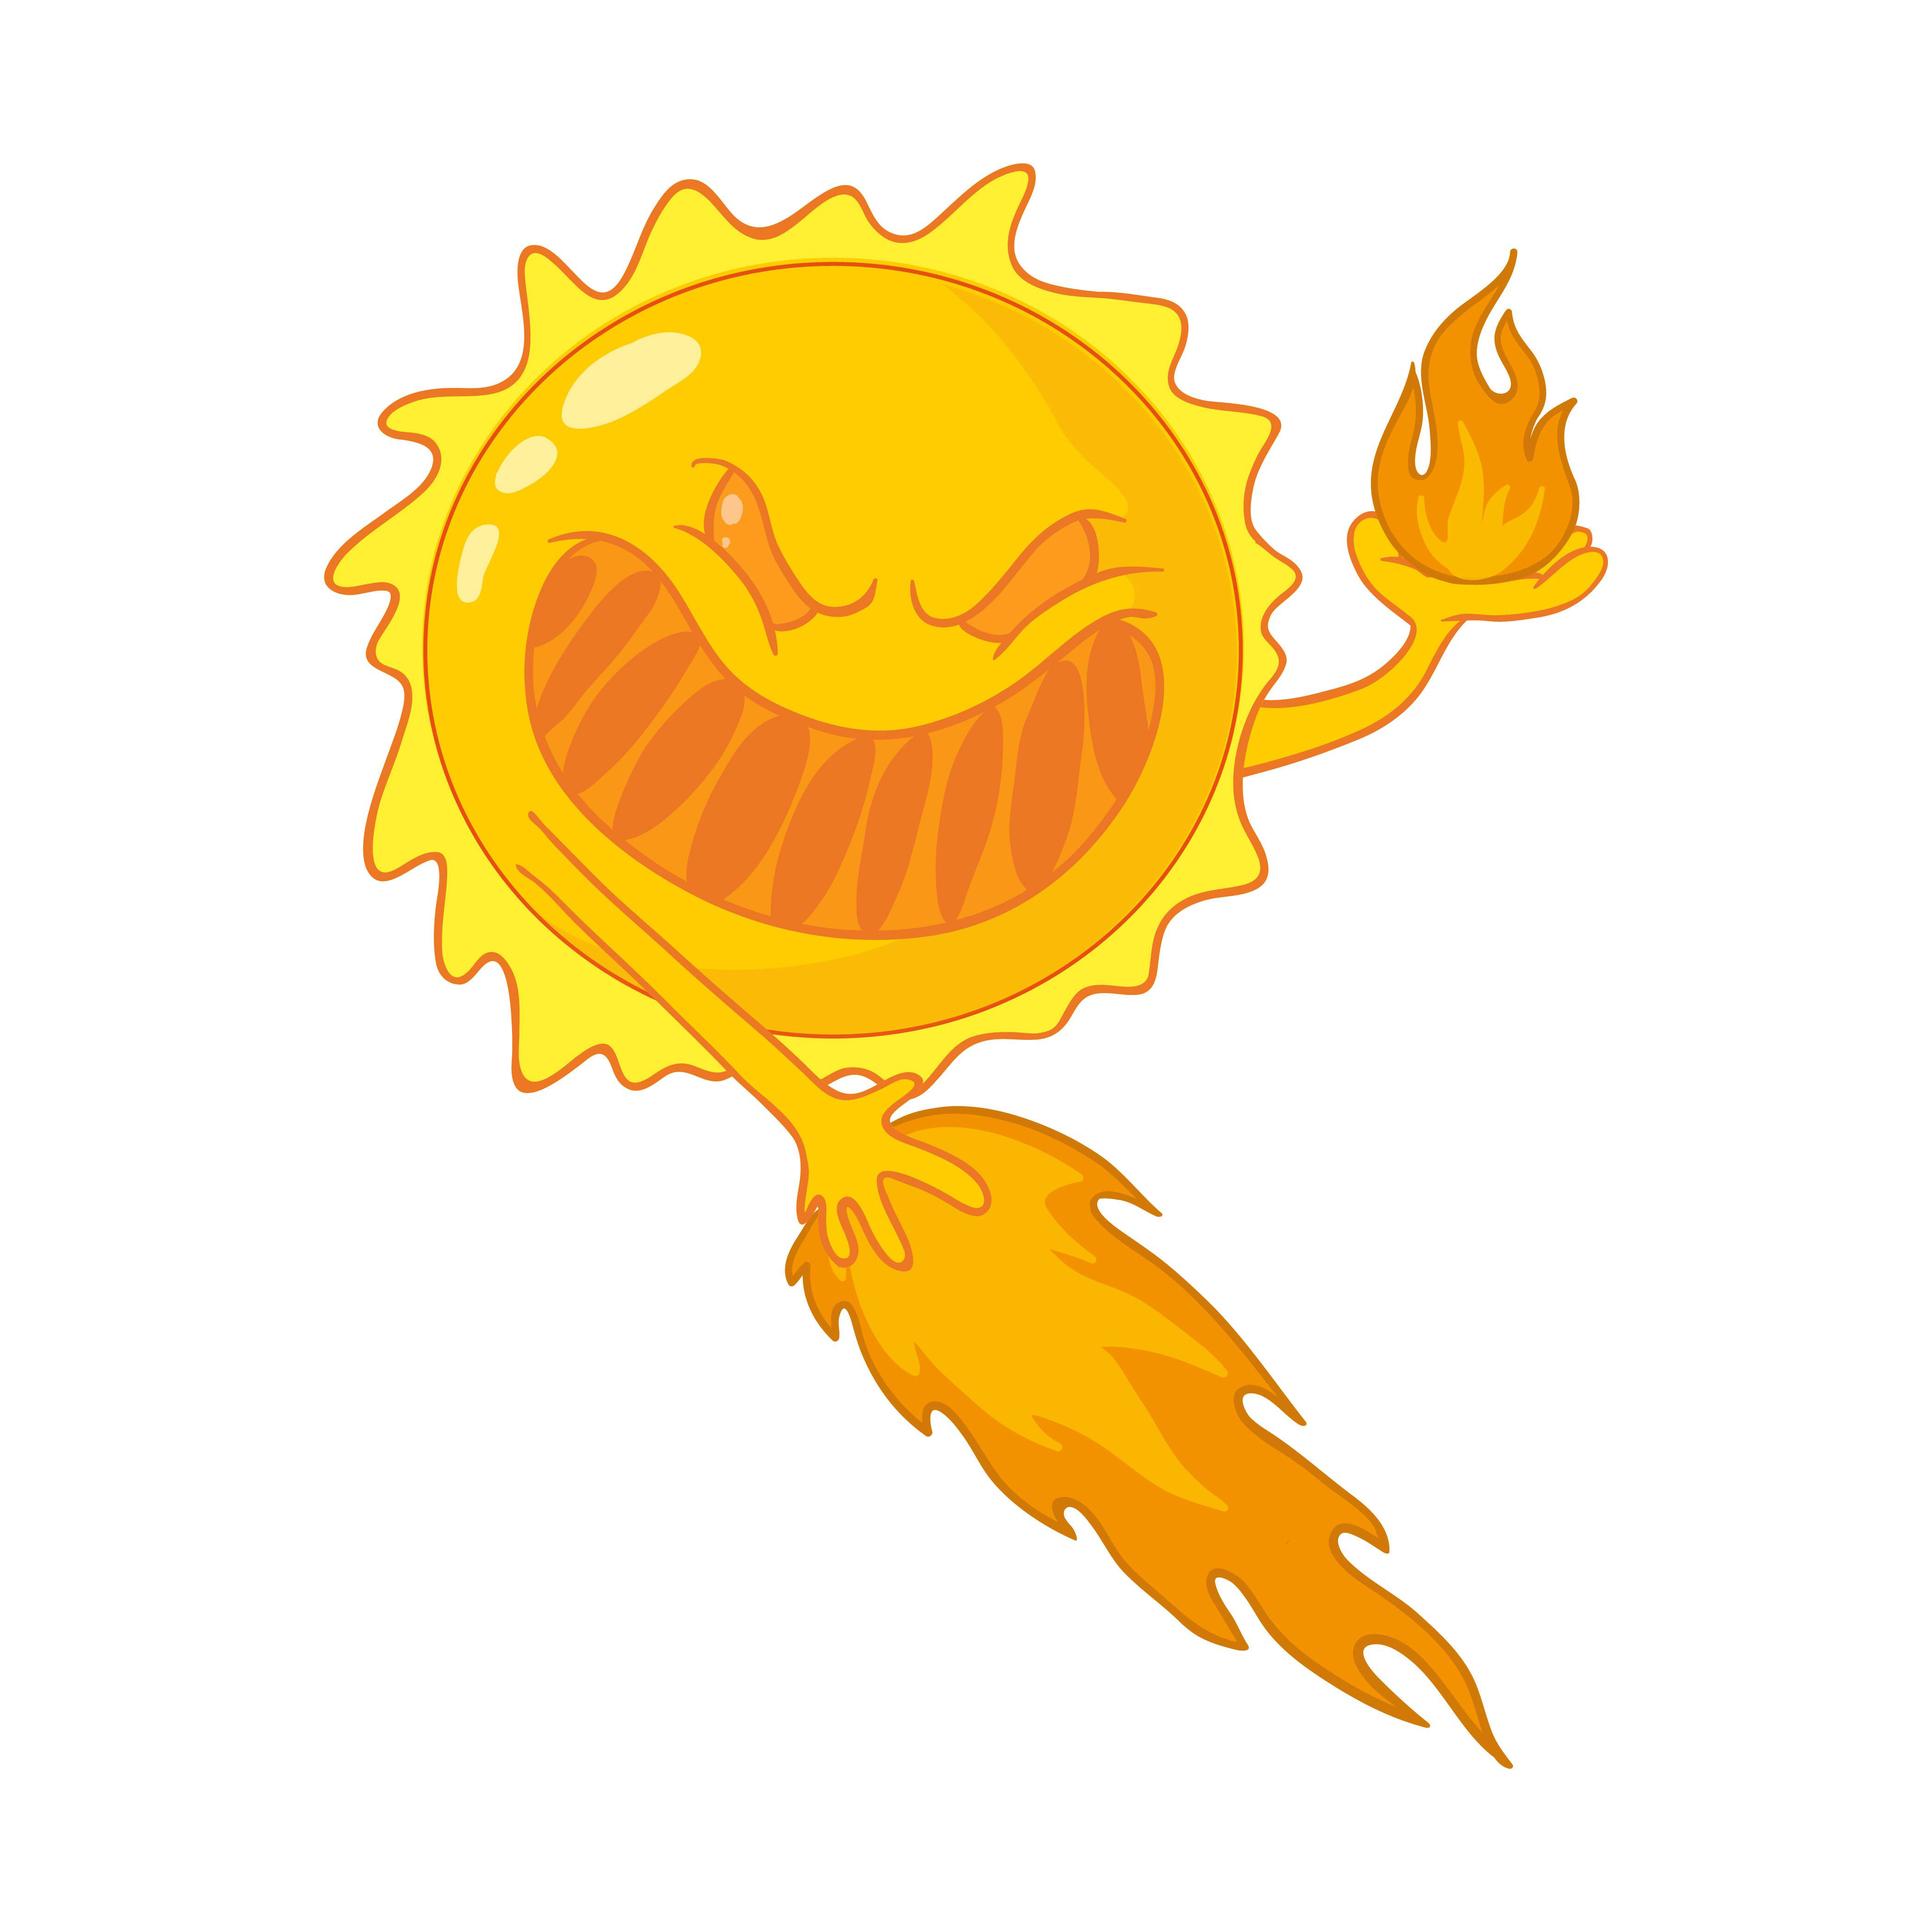 UV sun rays cartoon.jpg